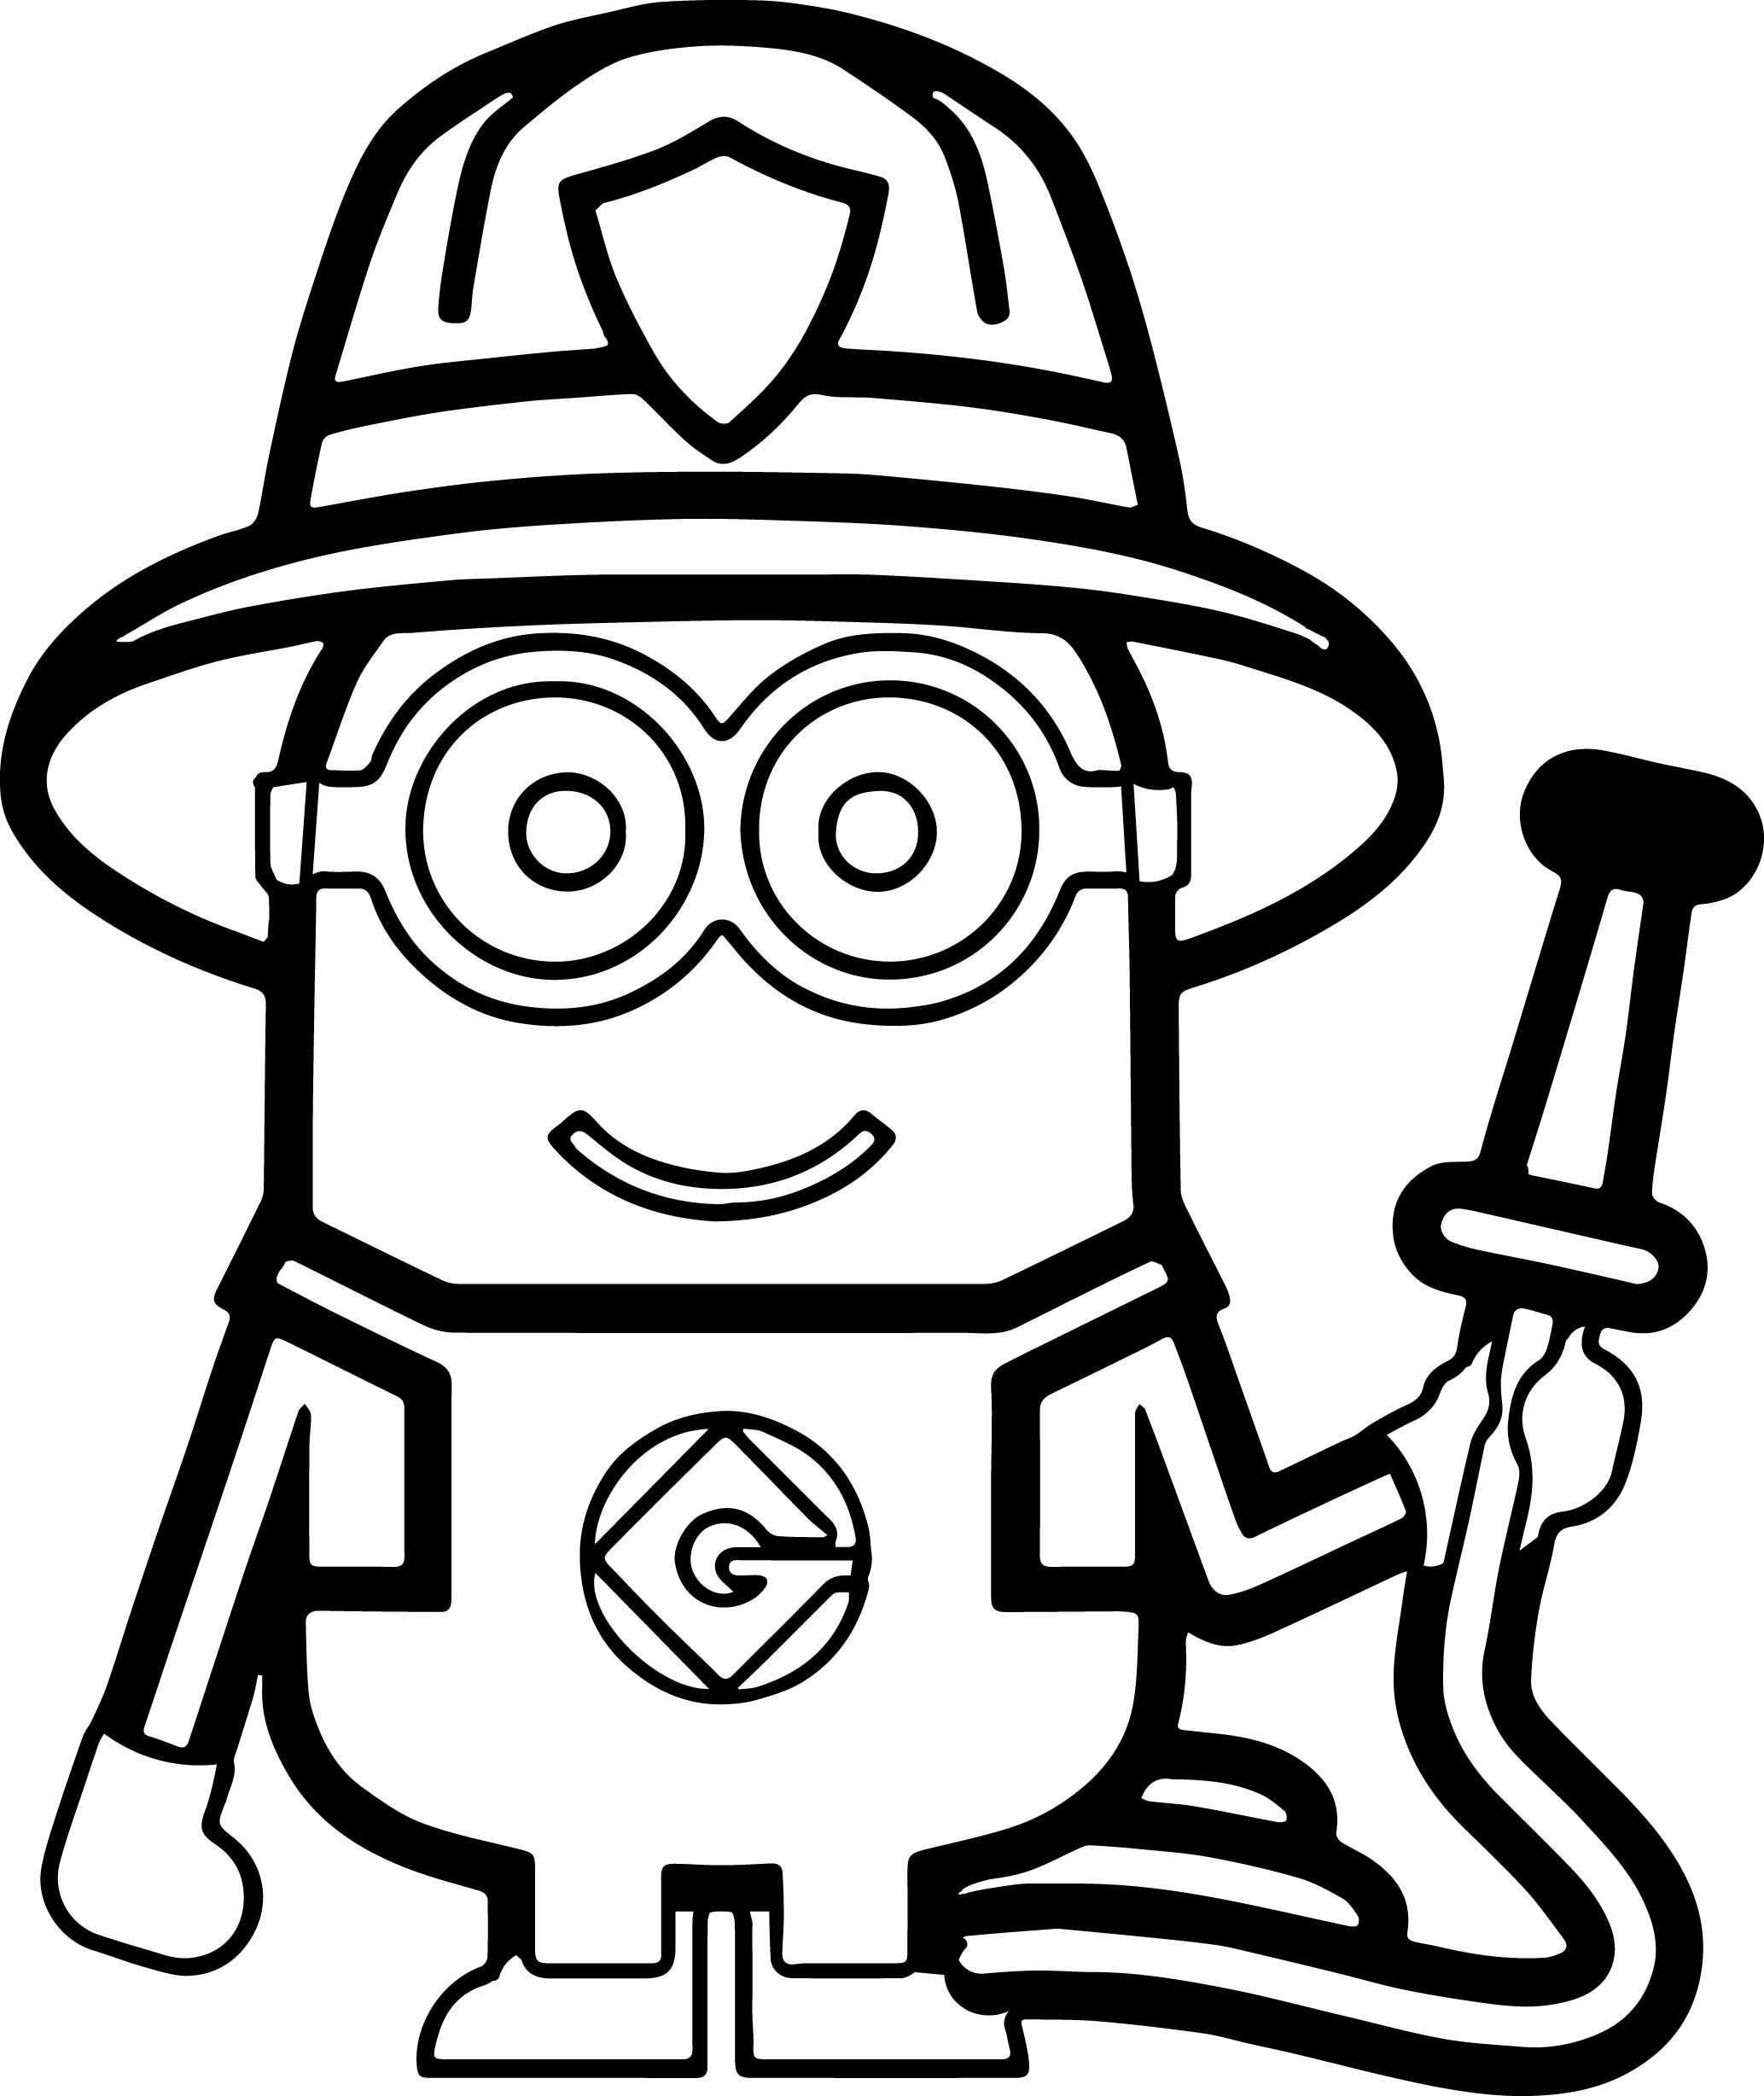 On online coloring minion - Minions Fireman Coloring Page More Pins Like This One At Fosterginger Pinterest